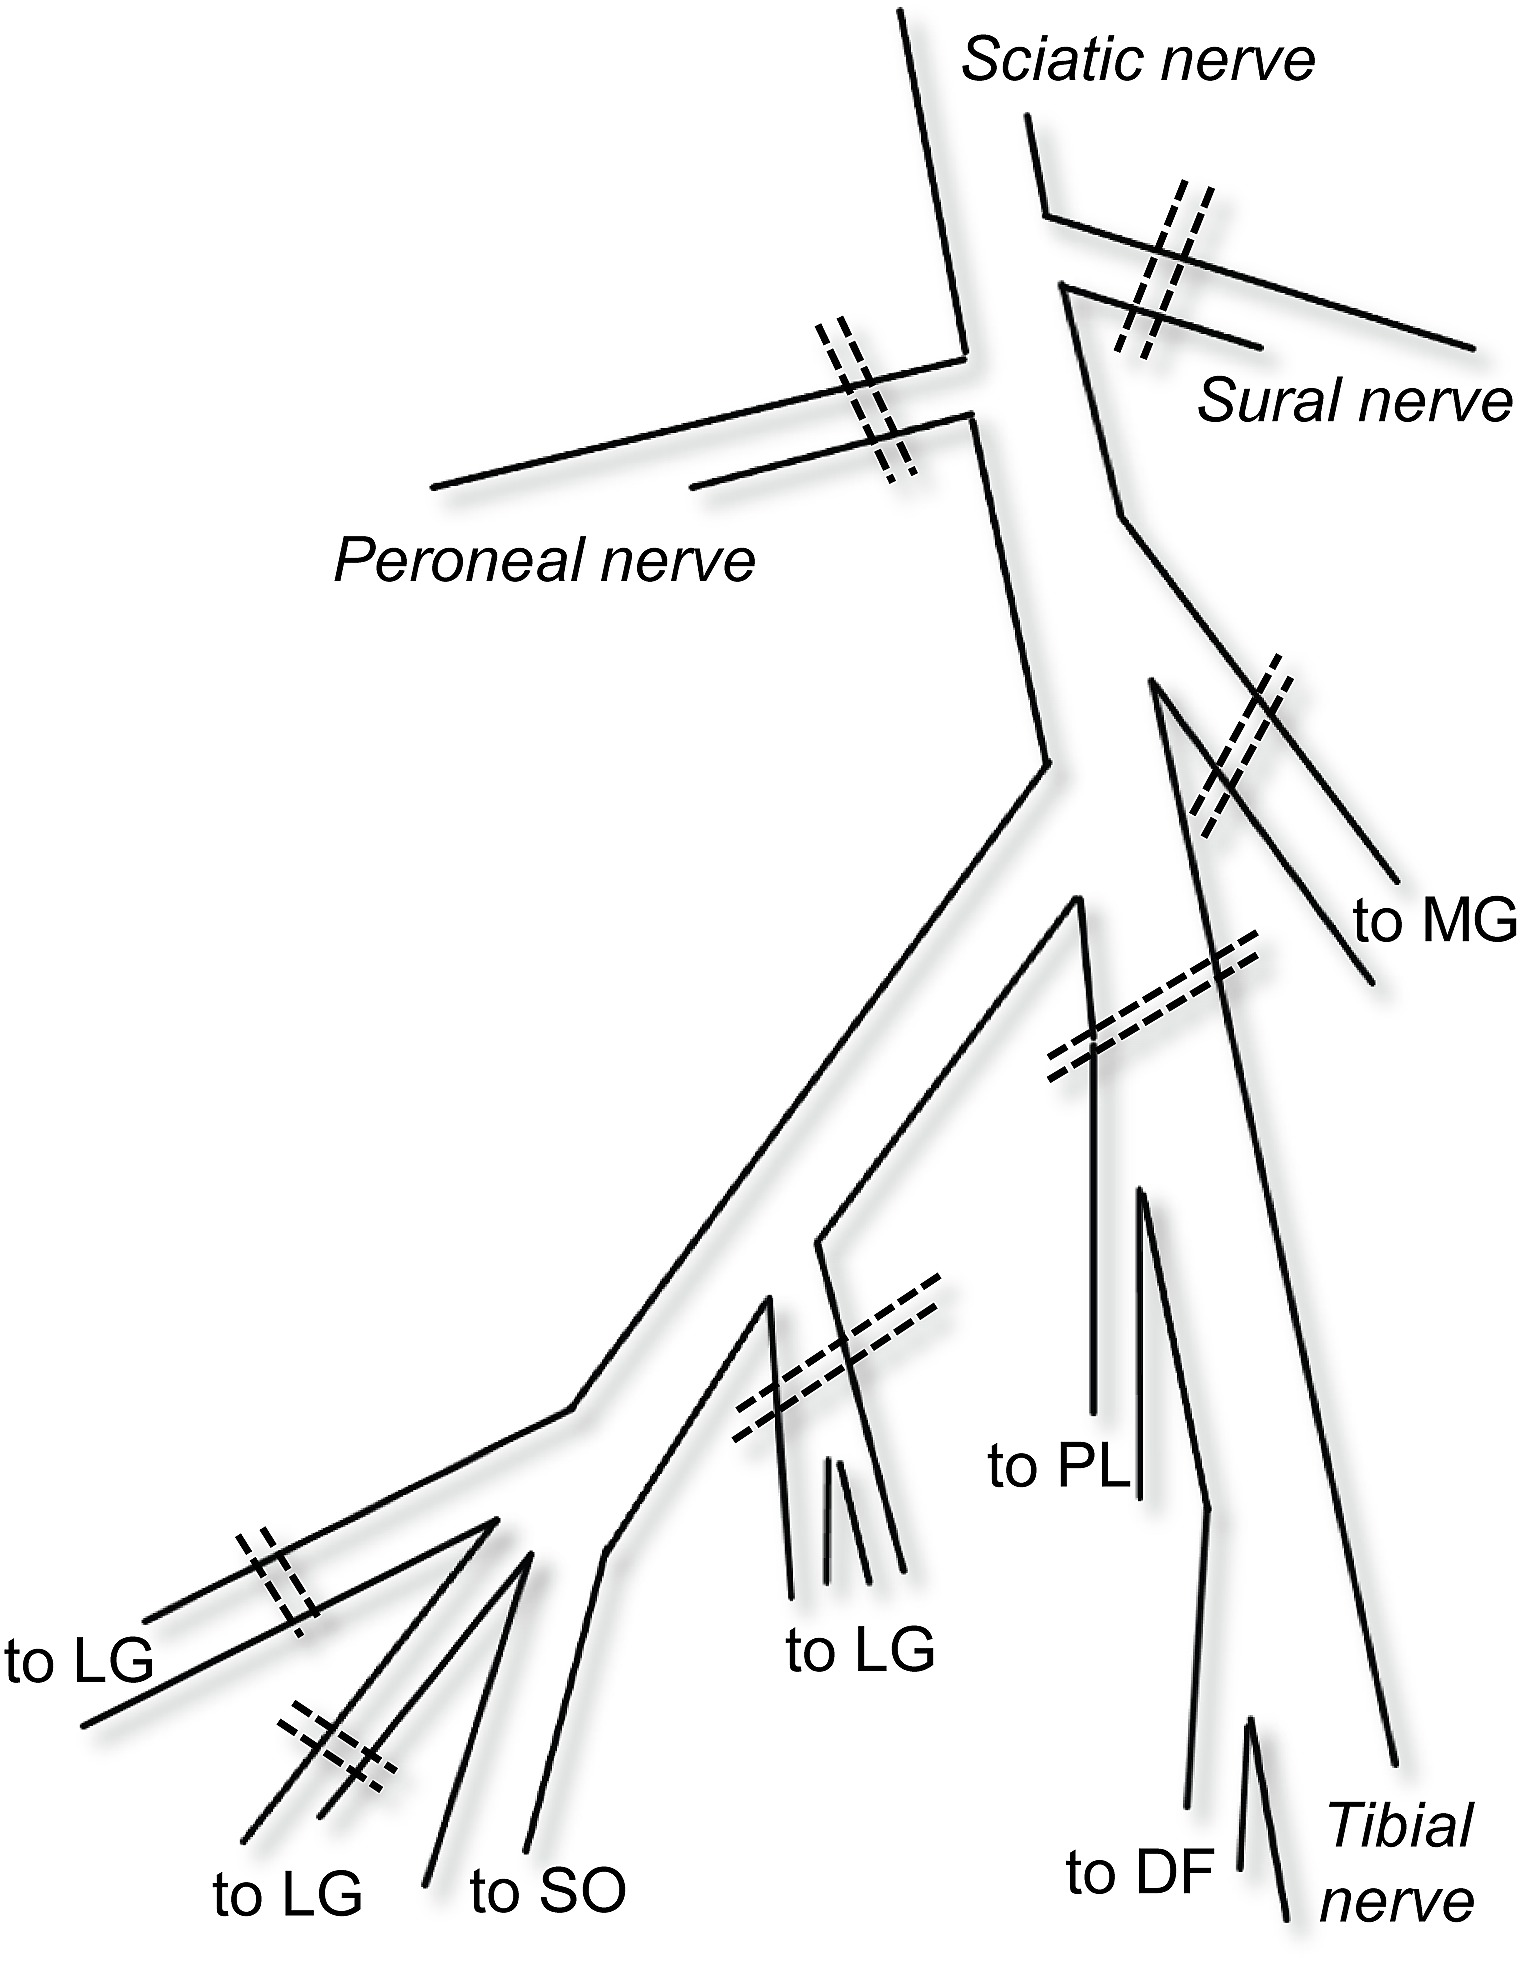 Schematic view of branches of the sciatic nerve in the popliteal fossa.